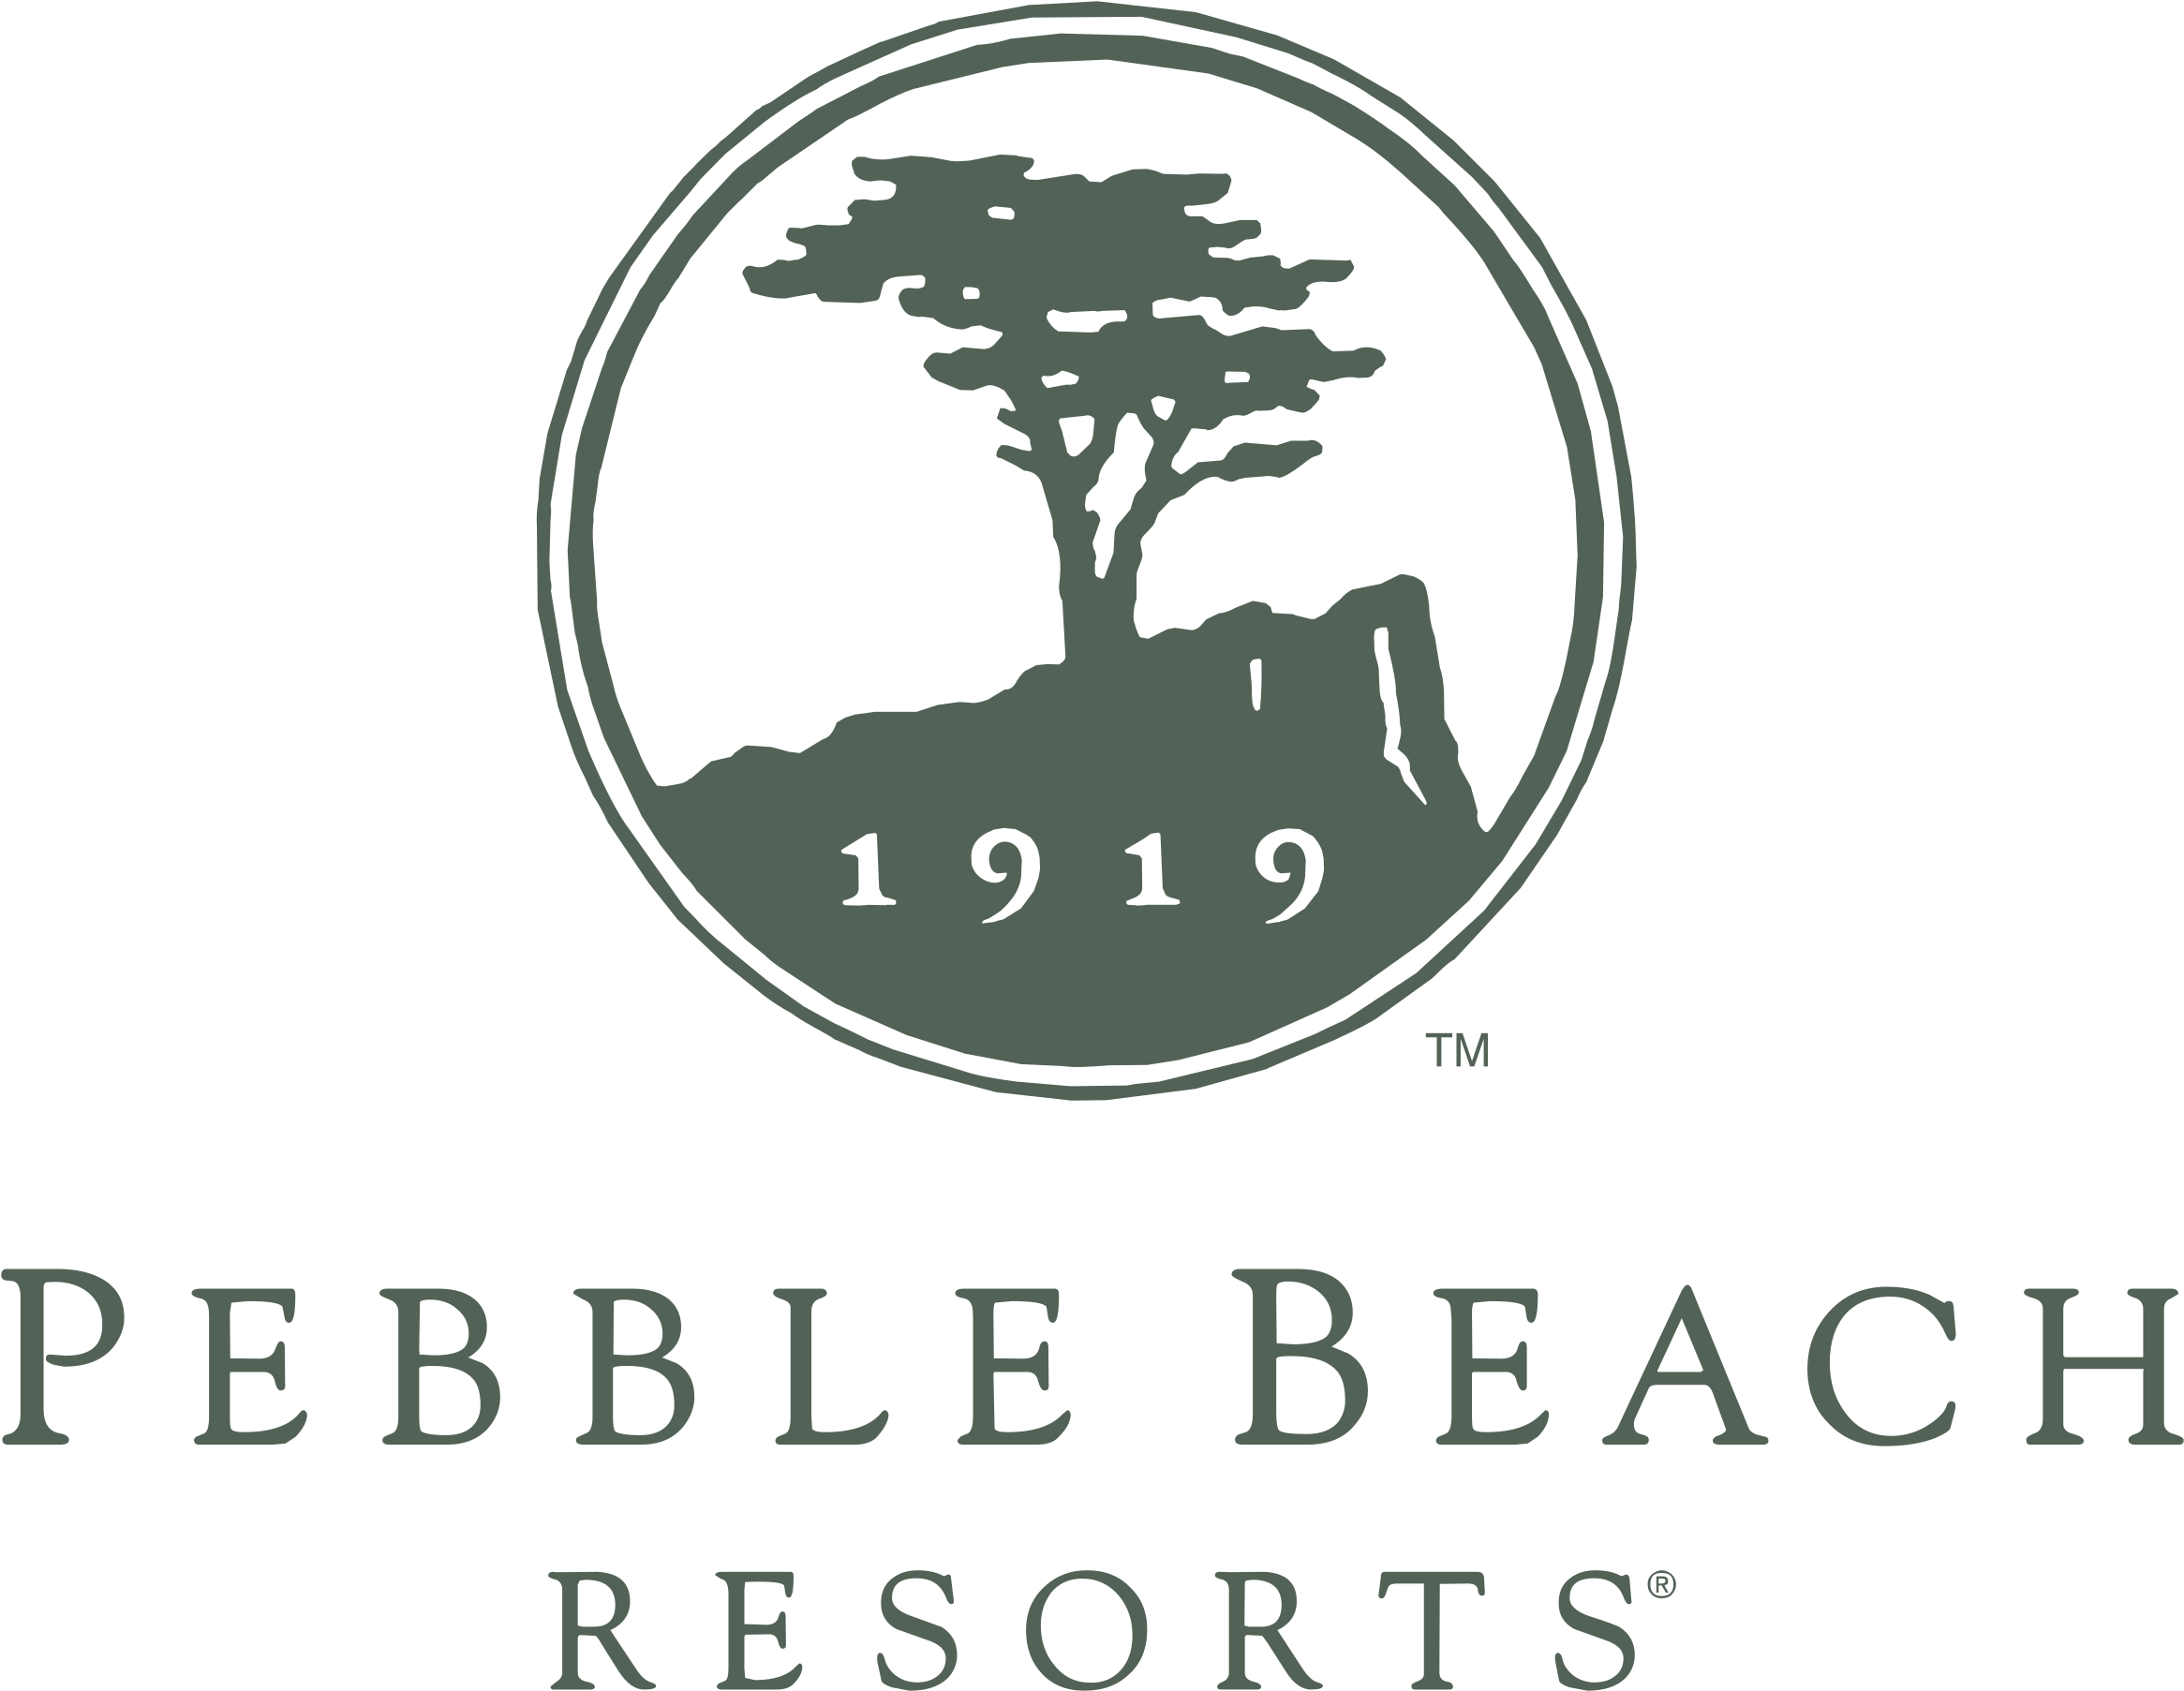 Pebble Beach Resorts logo